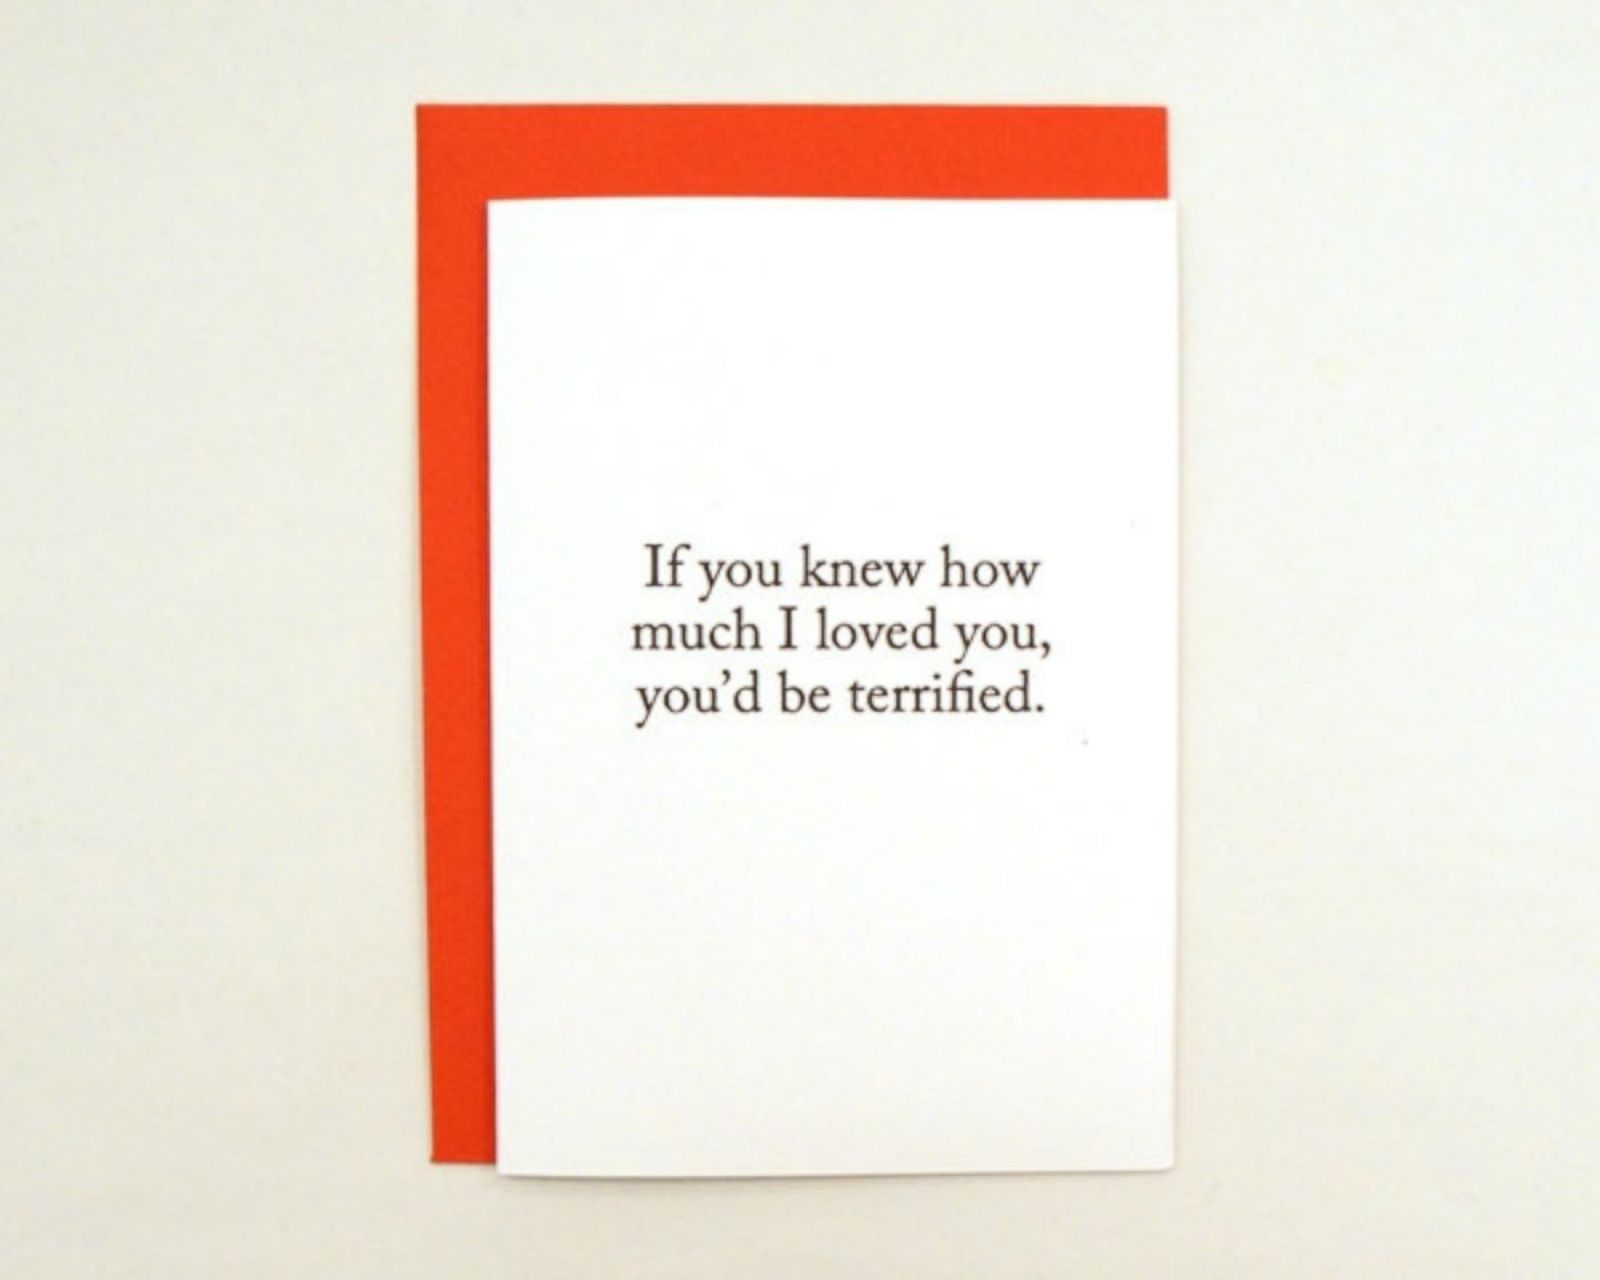 NotSoSweet Valentines Day Cards Photos – Stalker Valentine Card